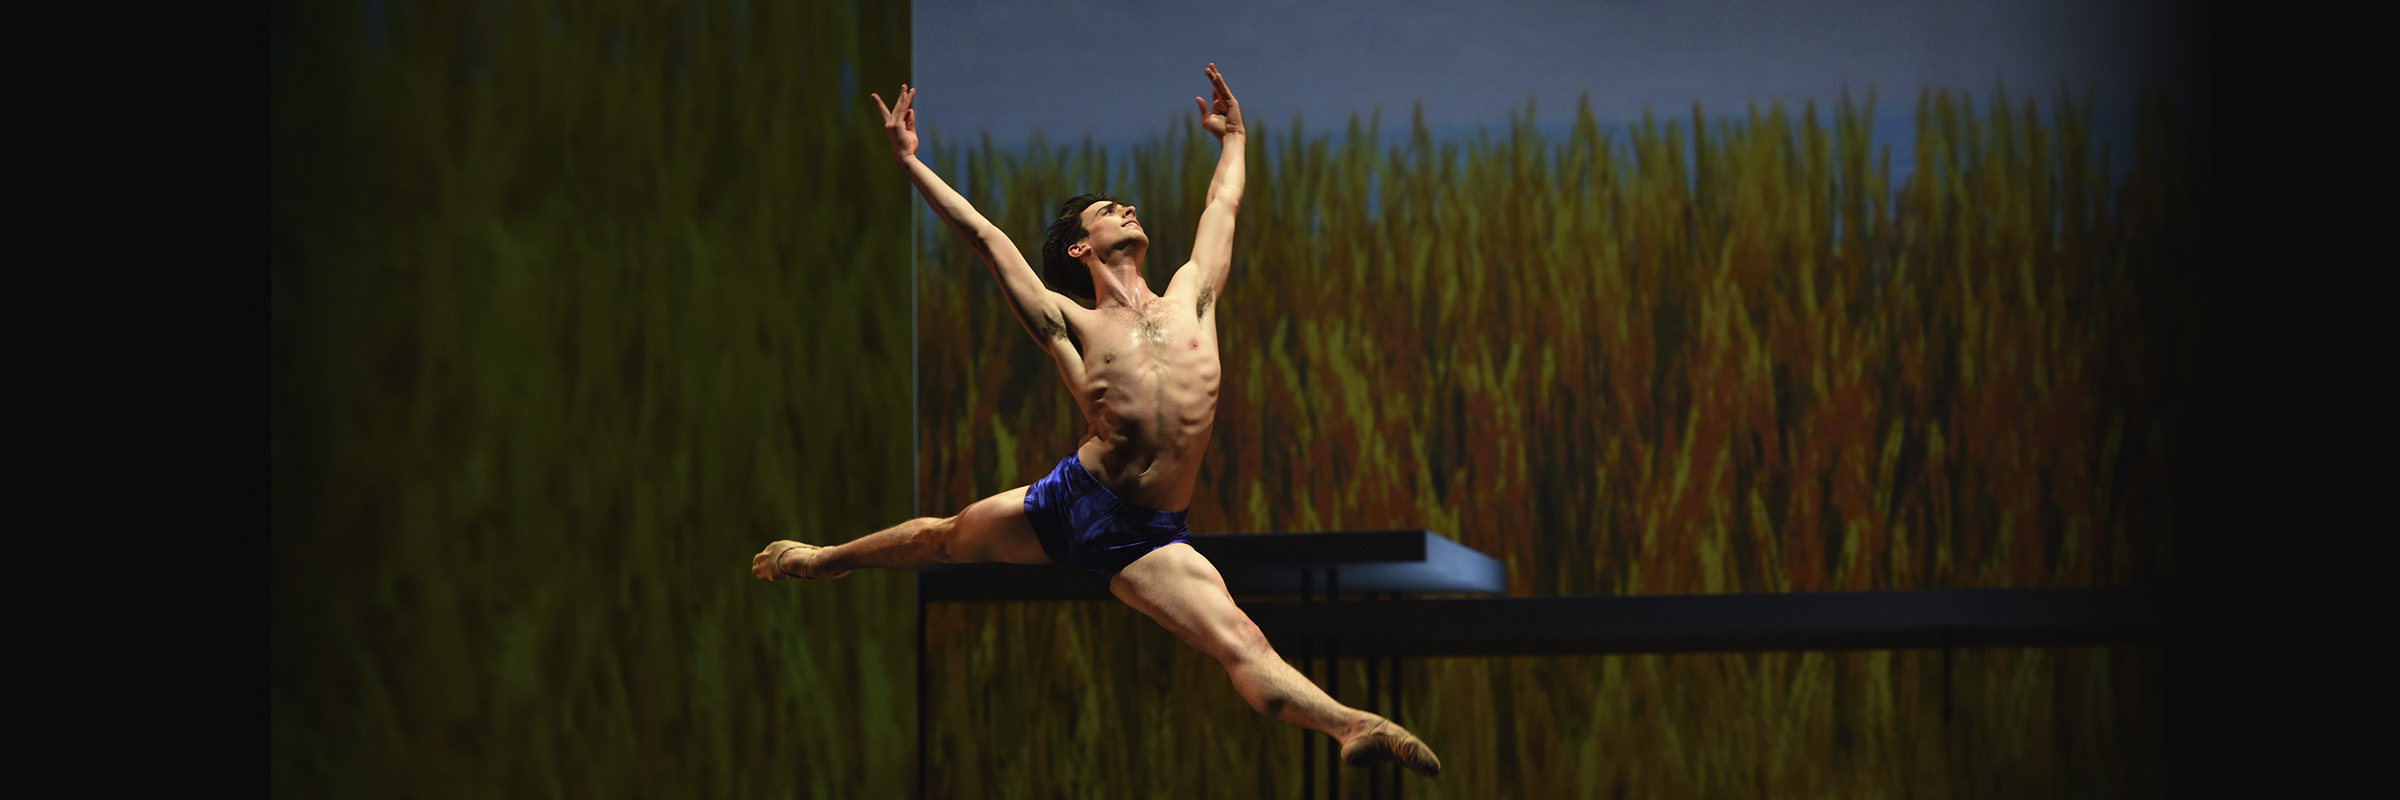 Joseph Walsh leaping in Yuri Possokhov's Swimmer